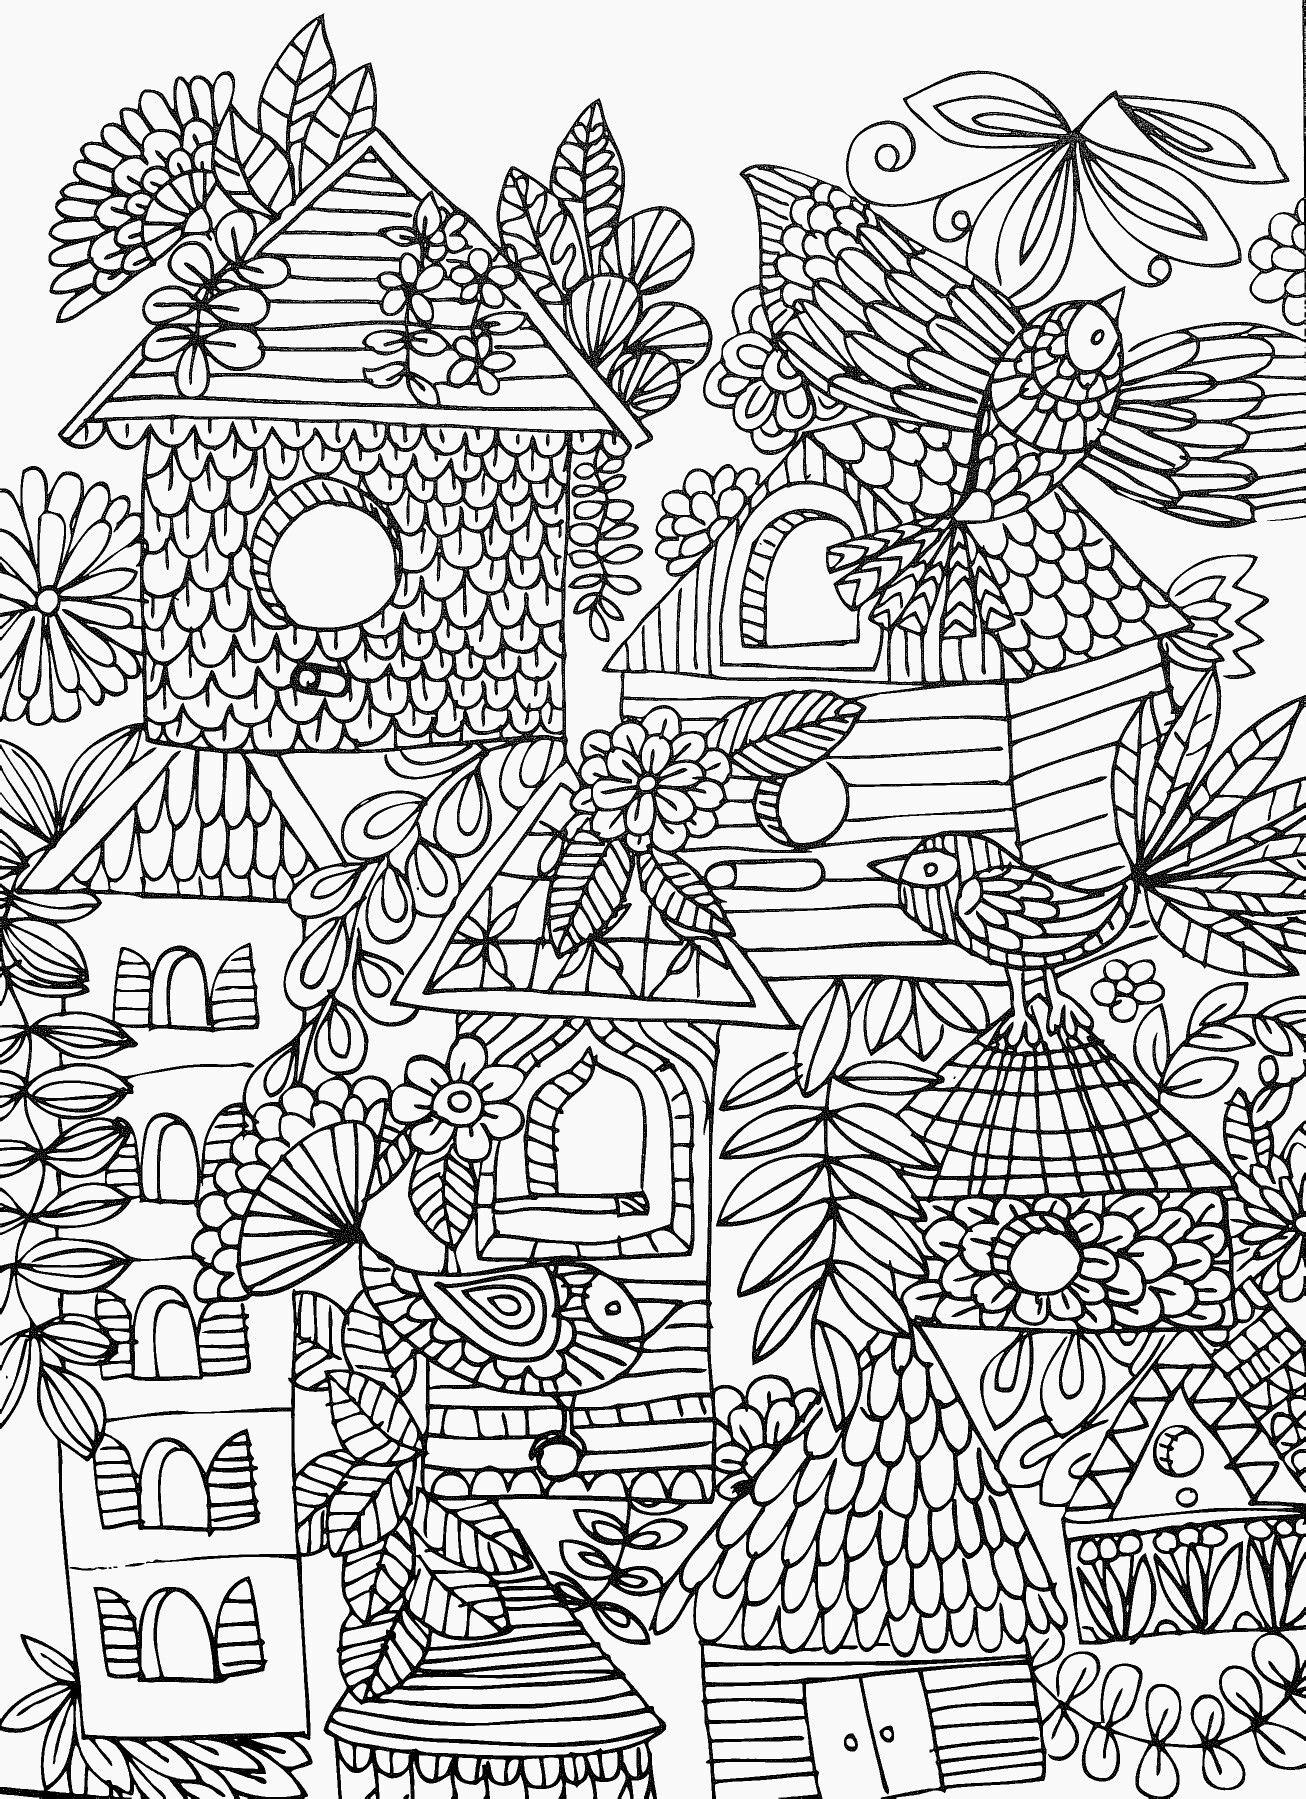 coloring pages house with garden let gardening gardening coloring pages garden pages with coloring house